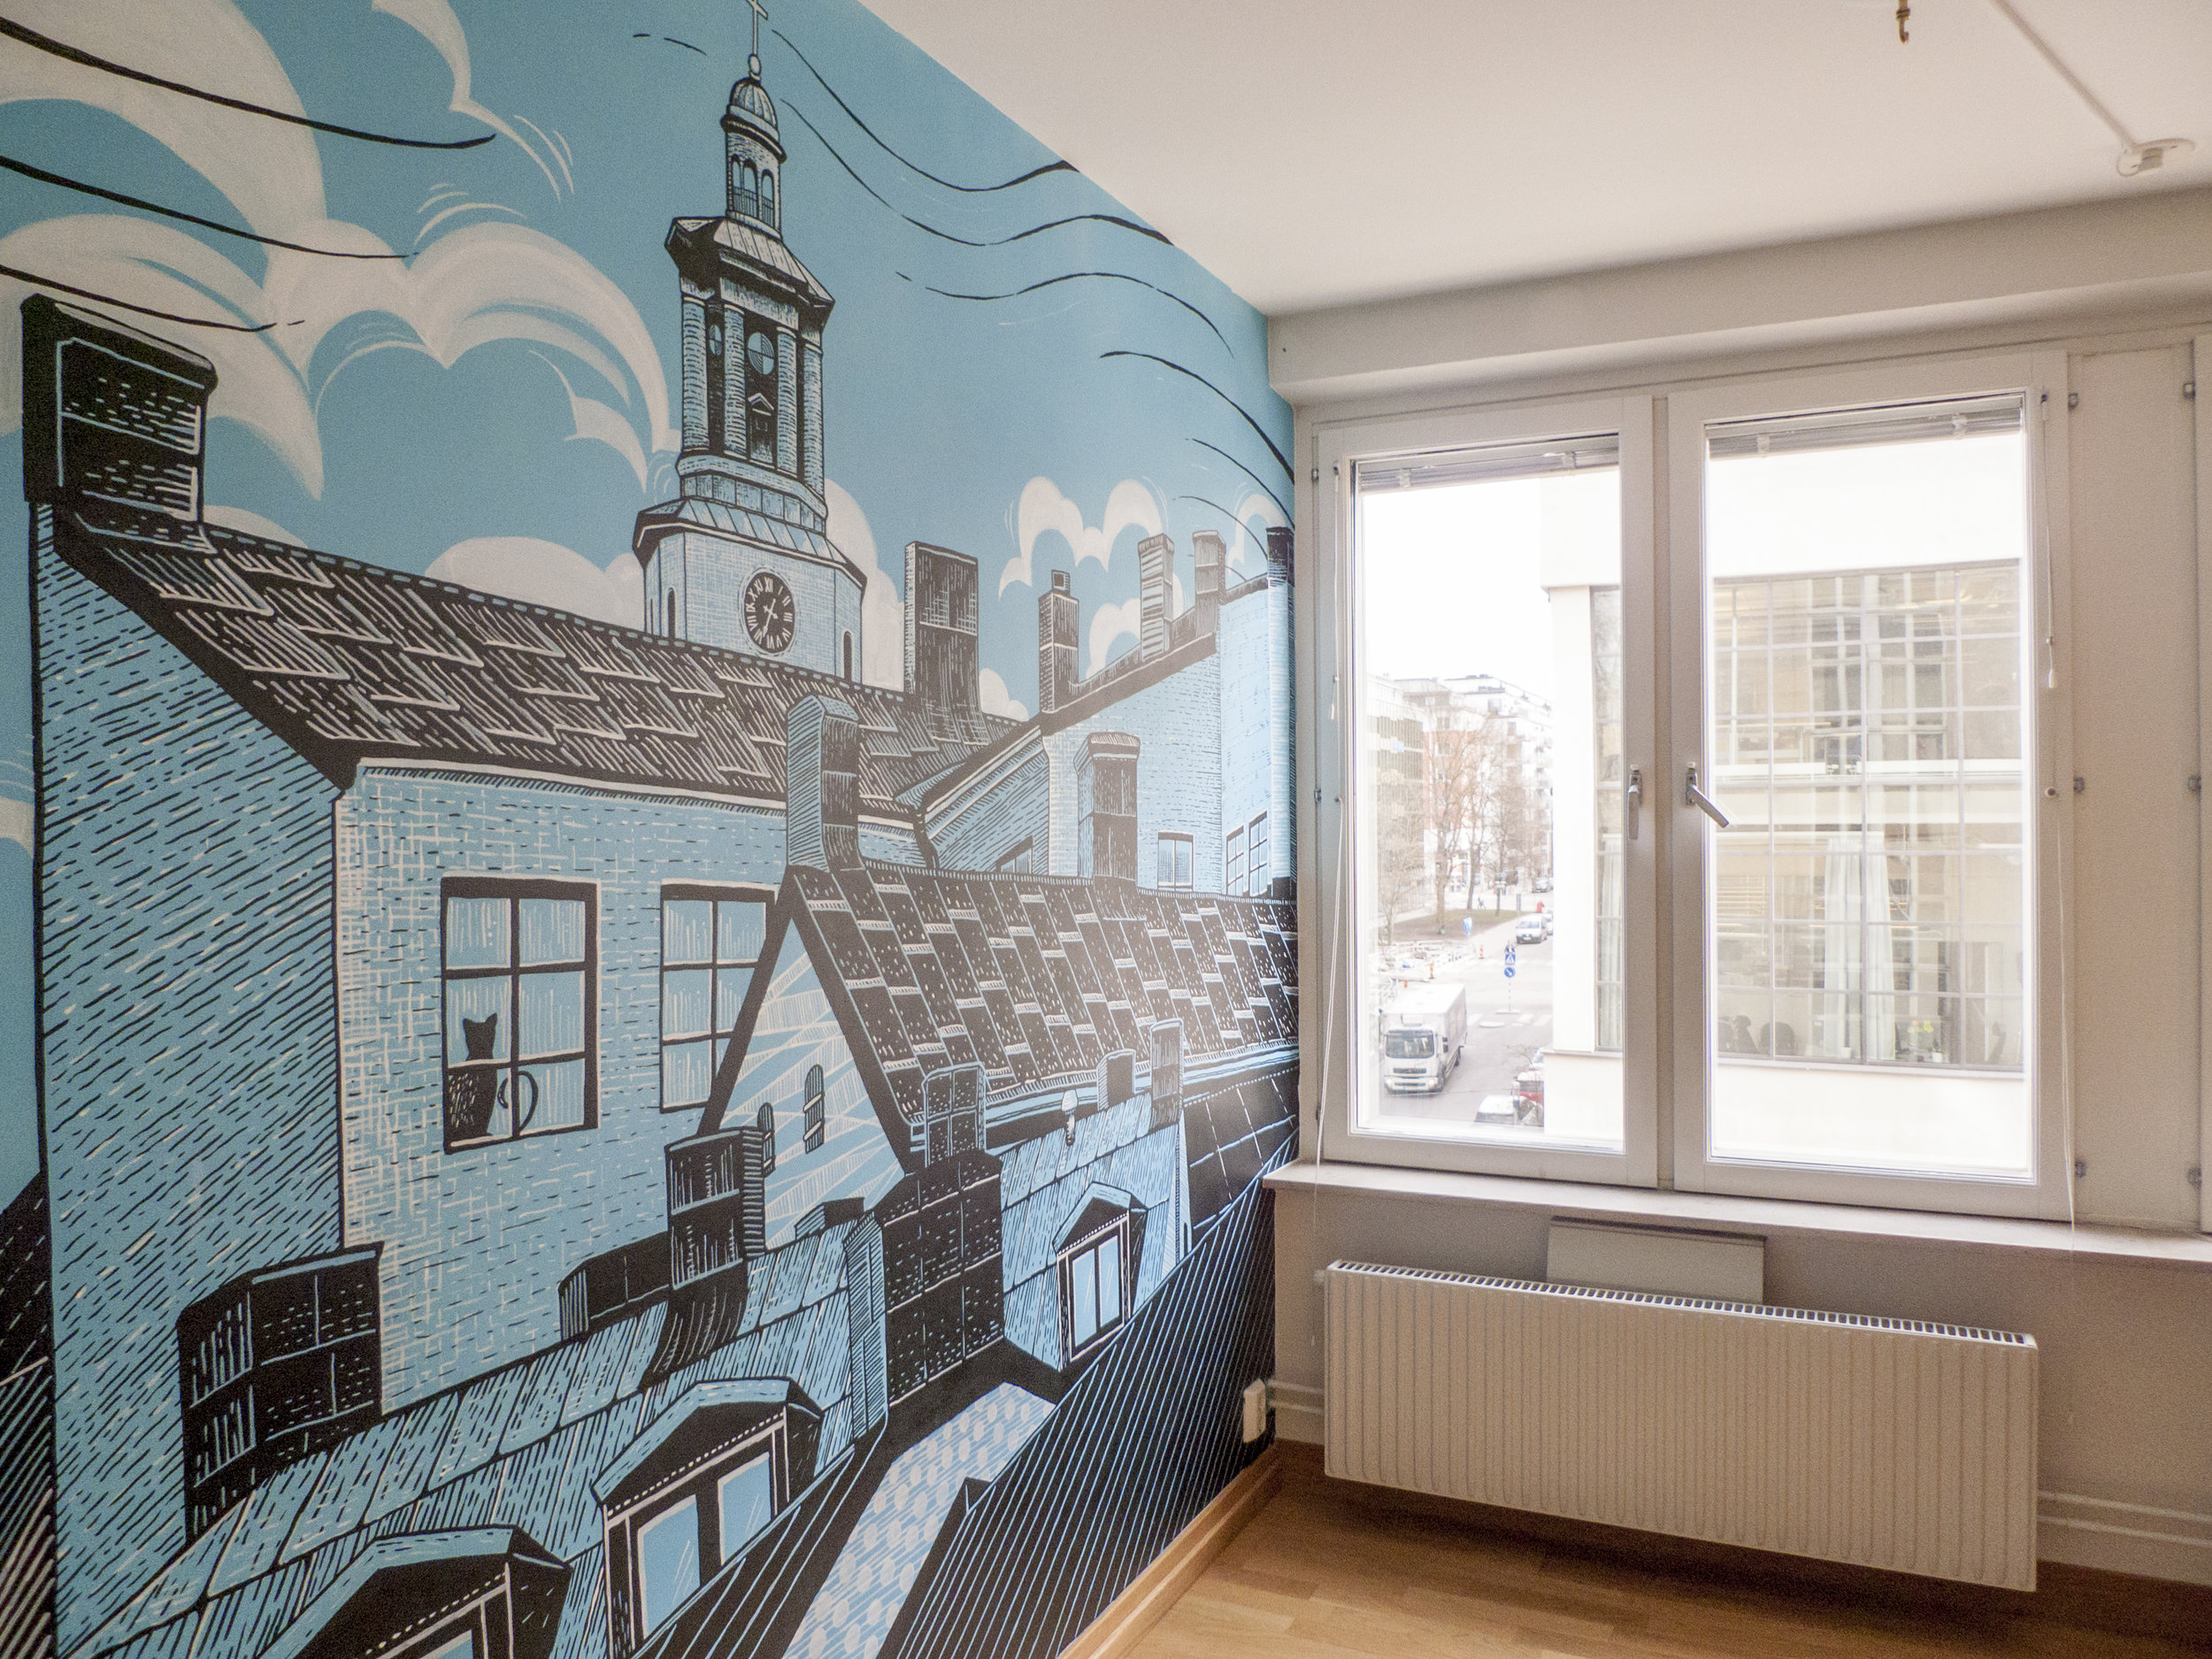 Private commission, wall mural in an apartment on  Södermalm  based on the Maria Magdalena linocut.